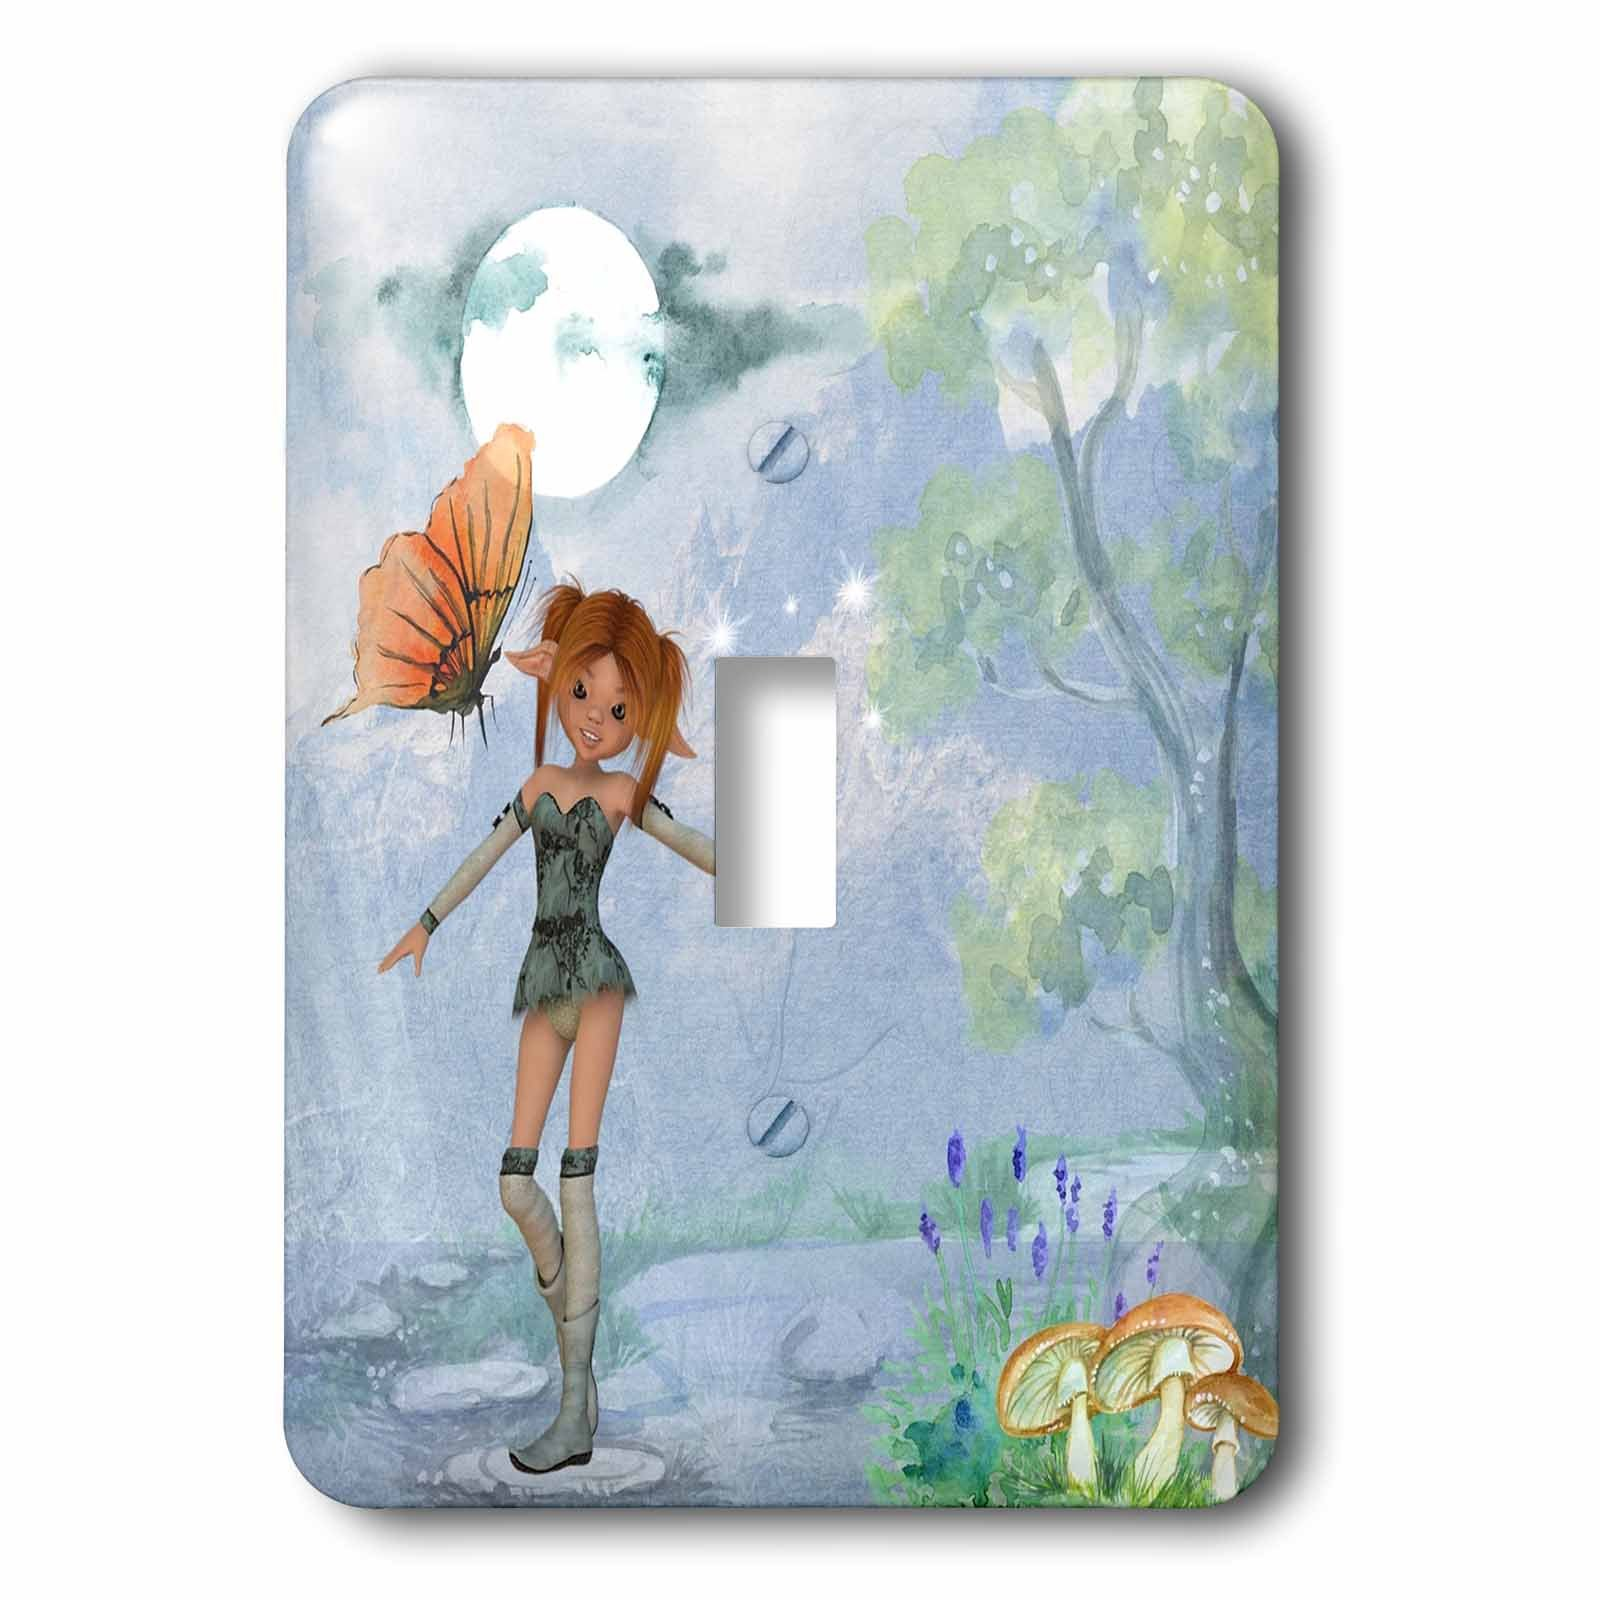 3dRose Fairies And Fantasy - Image of Fantasy Girl In Watercolor Woods With Full Moon - Light Switch Covers - single toggle switch (lsp_281583_1)